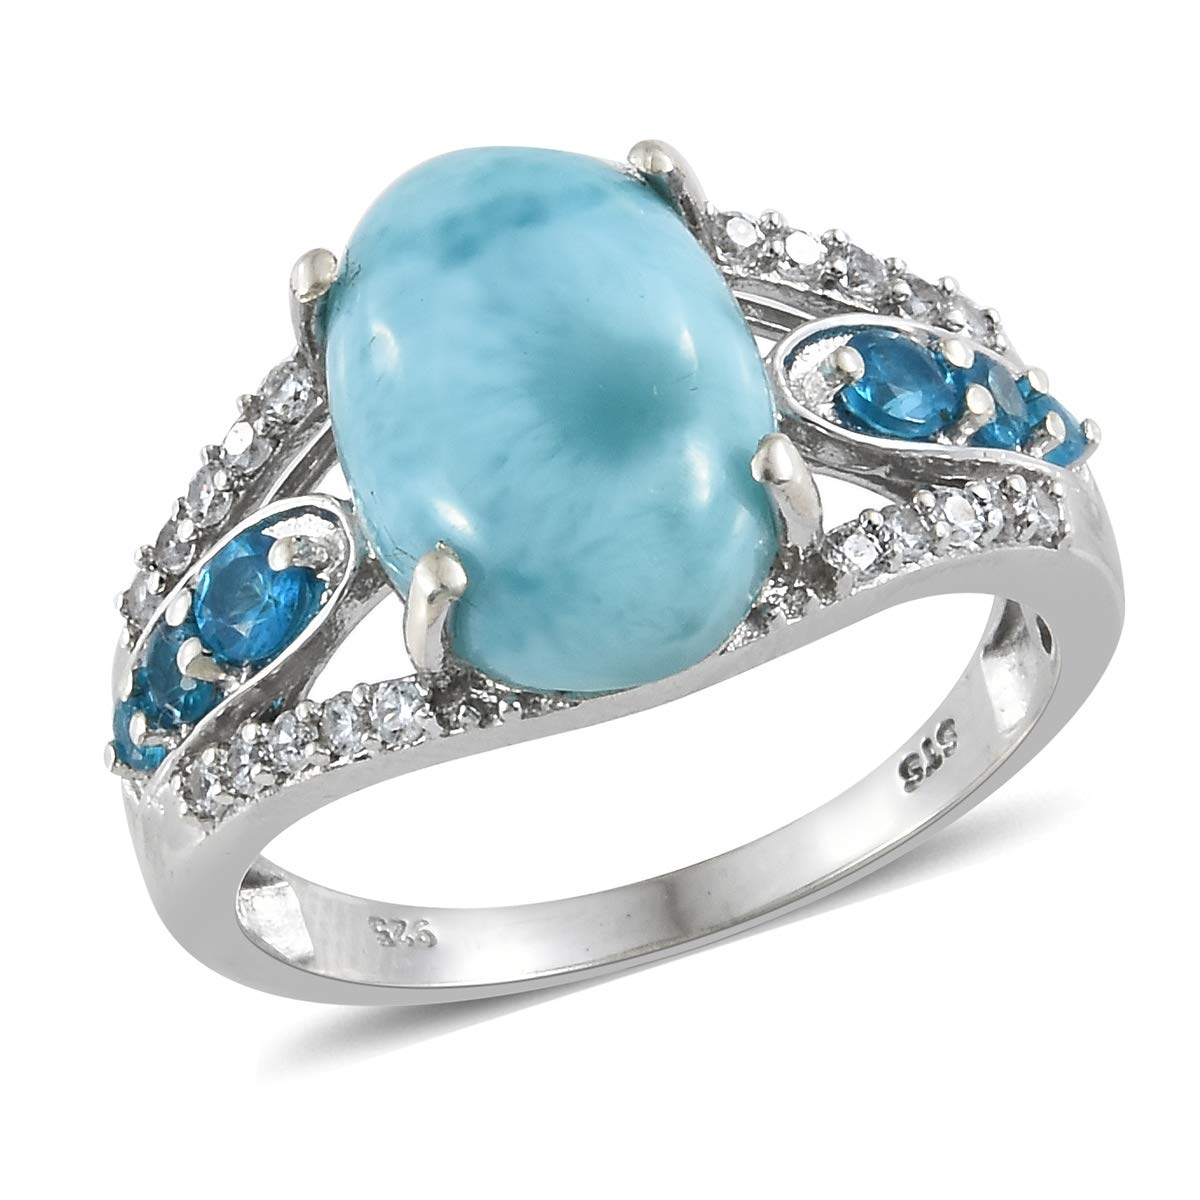 925 Sterling Silver Platinum Plated Oval Larimar, Neon Apatite, Zircon Fashion Ring for Women Size 7